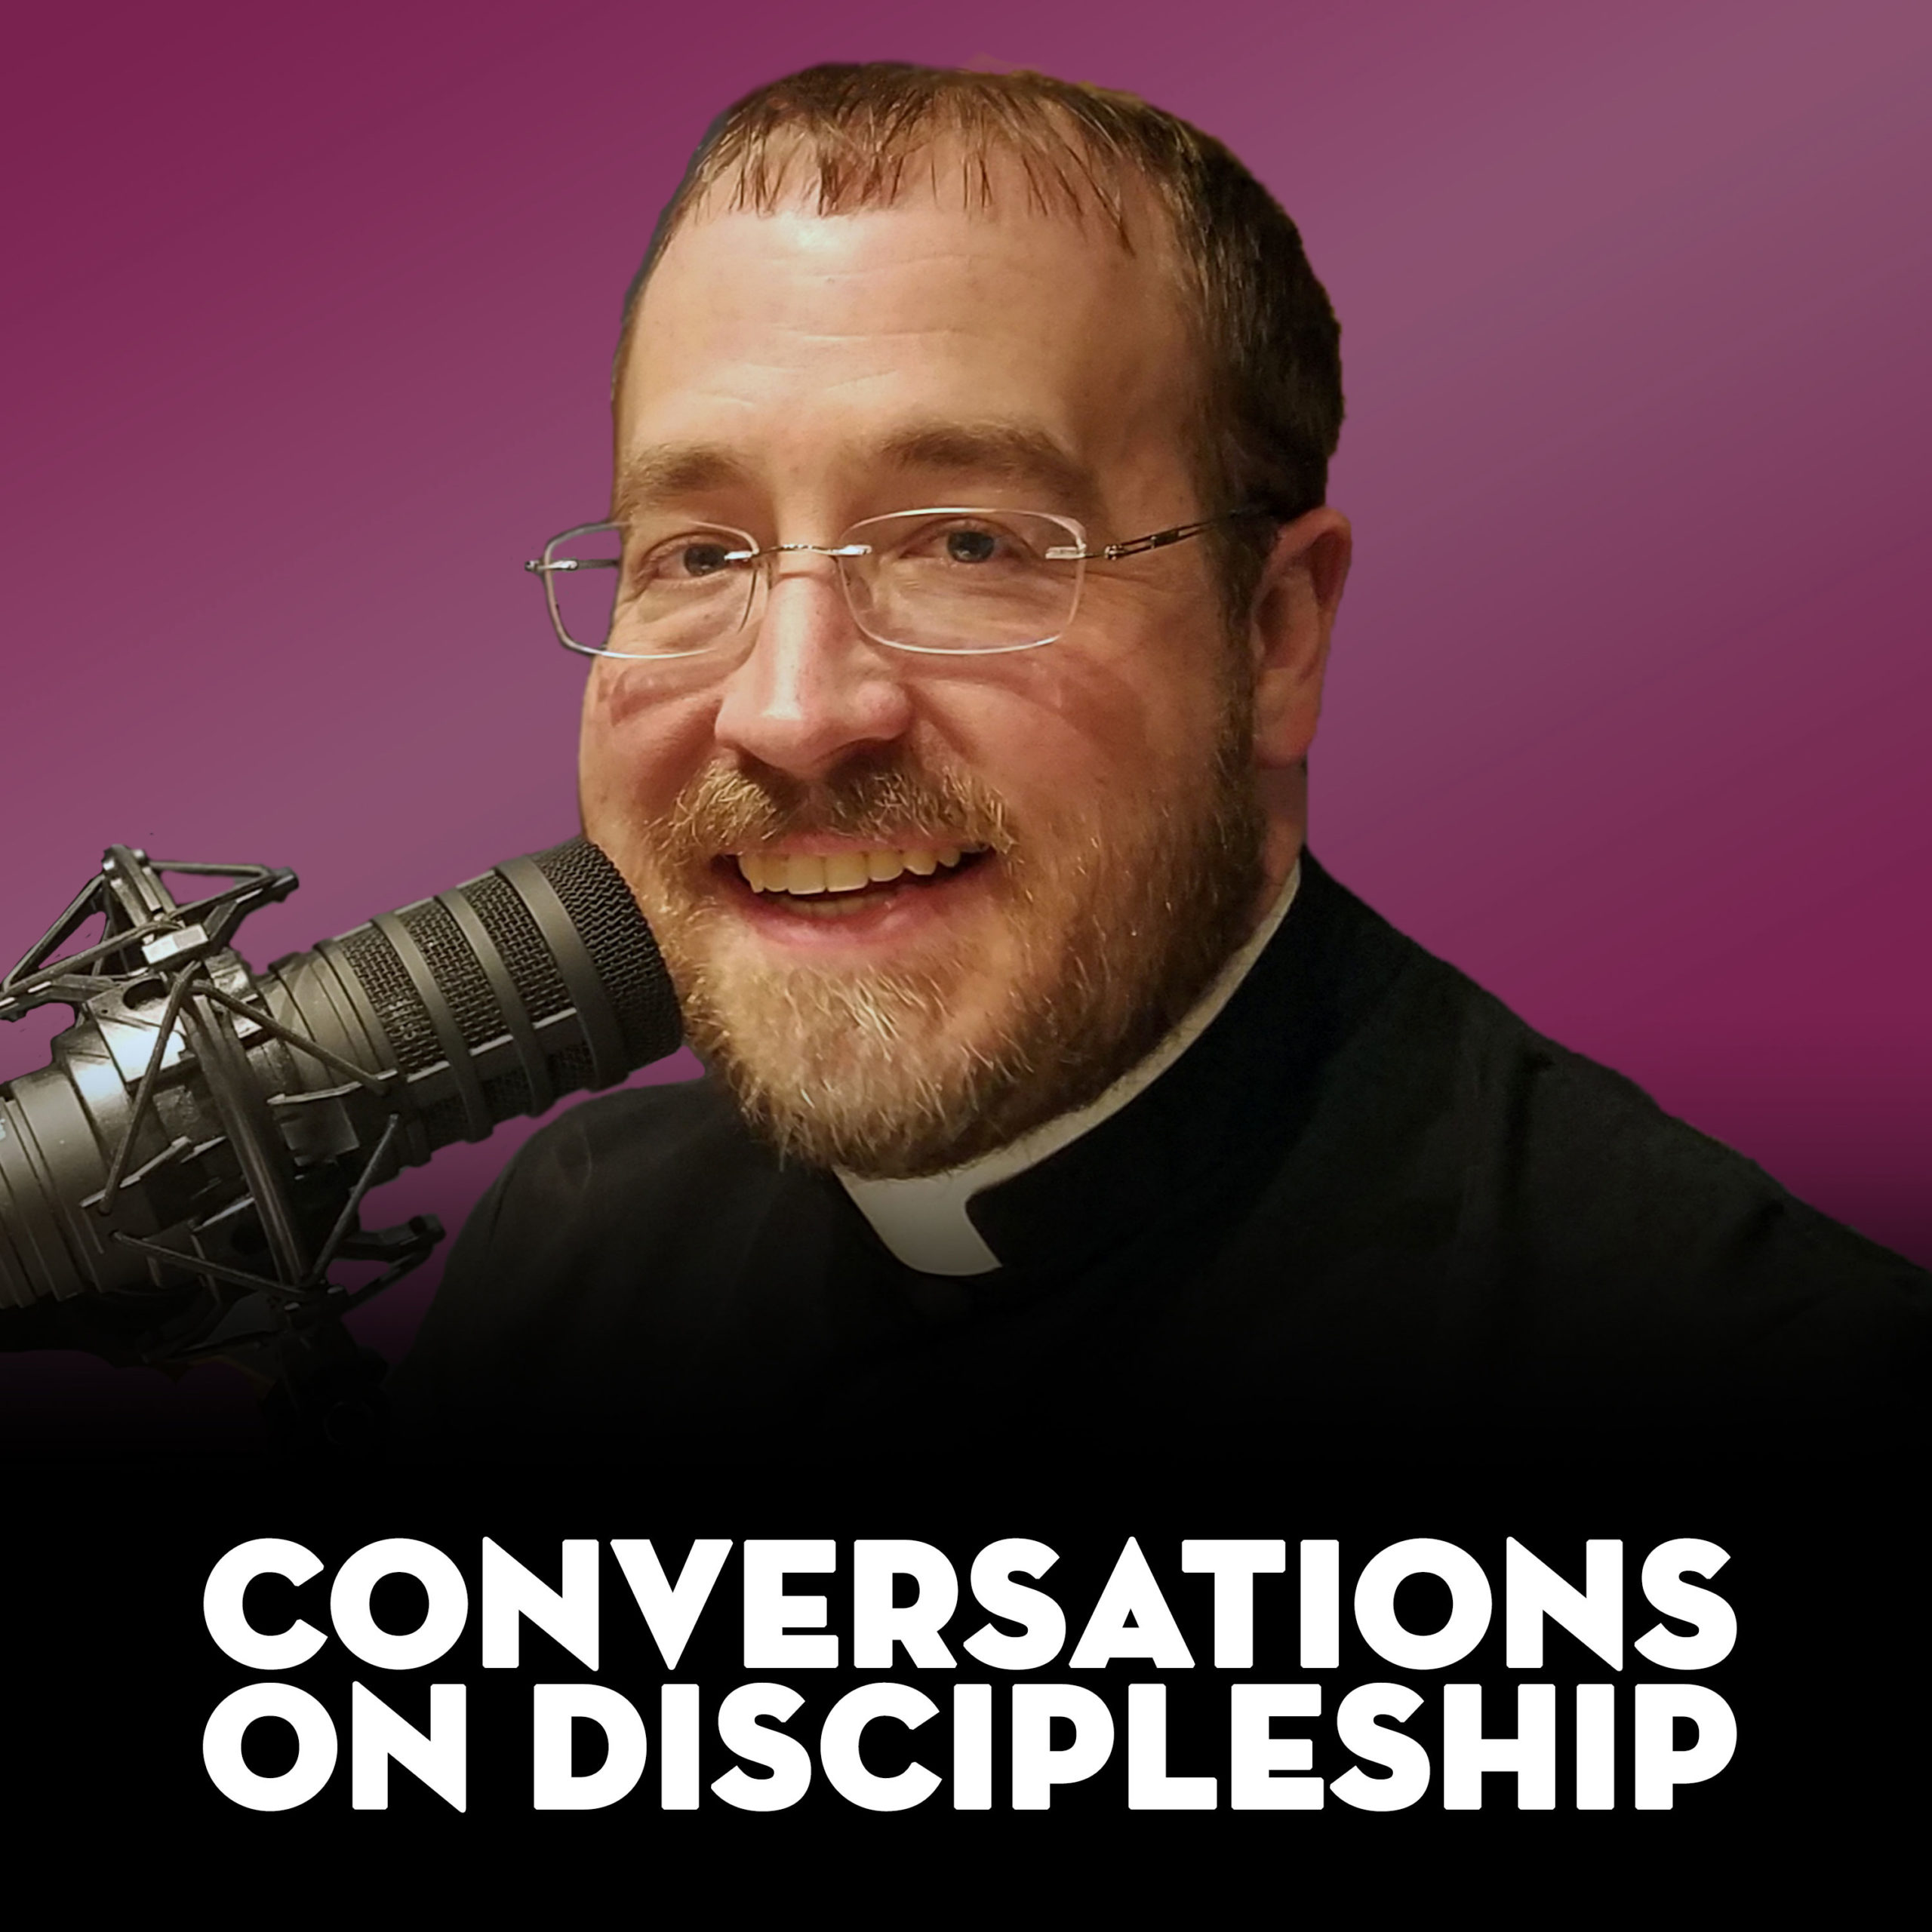 Conversations On Discipleship – Bishop Brennan, Vision for the Diocese, Part 12